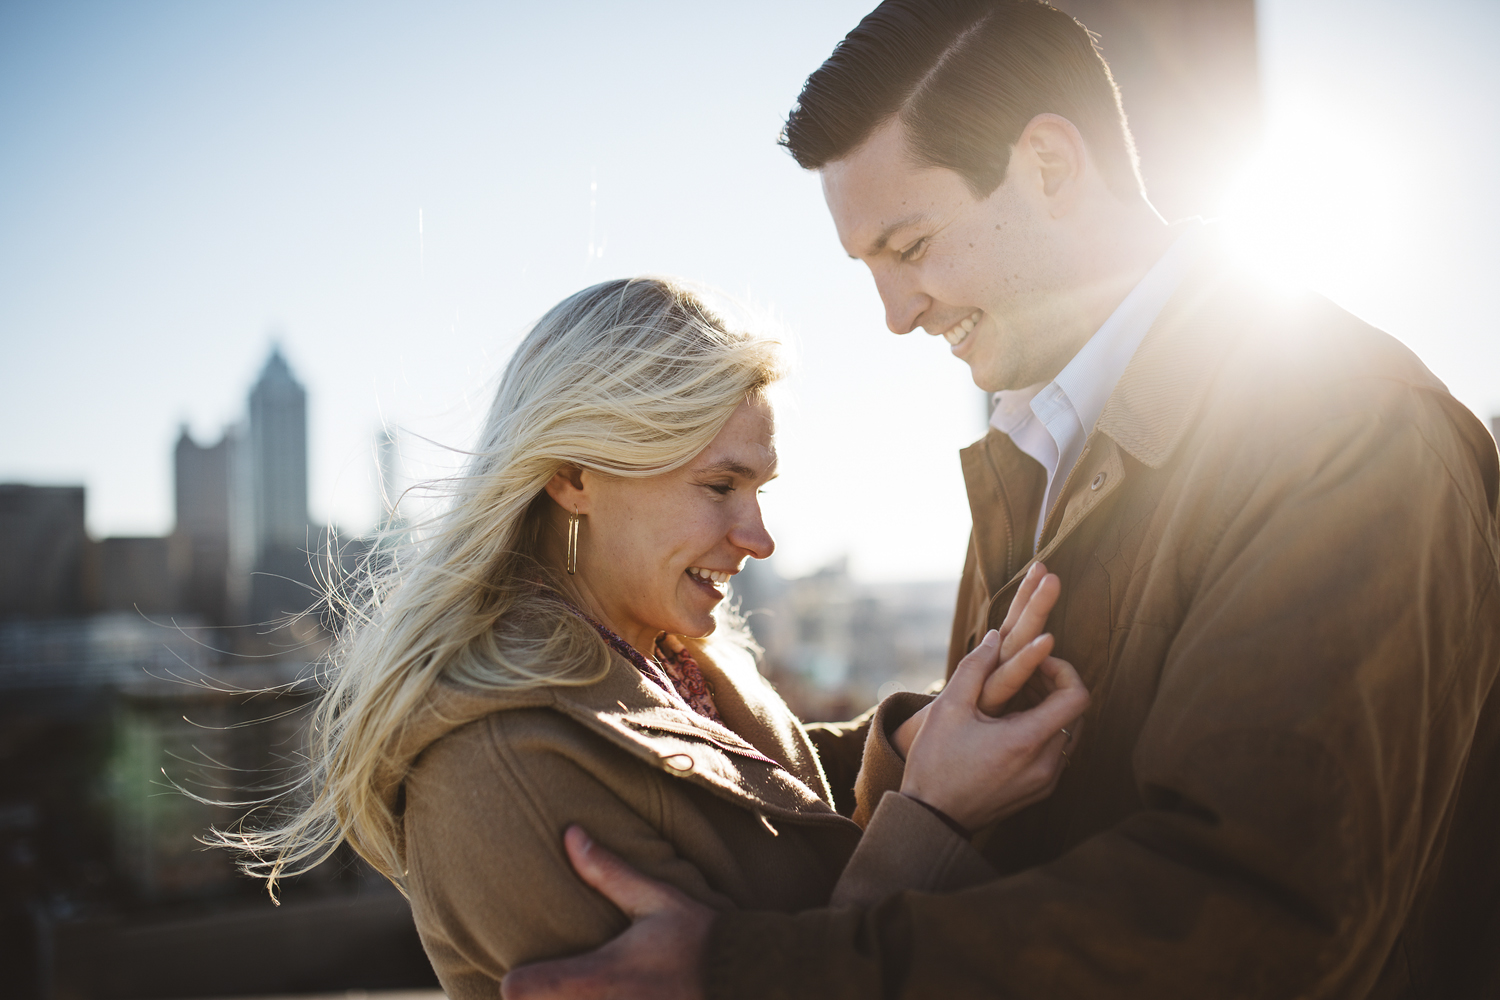 KDP_claire&drew - the proposal-163.jpg